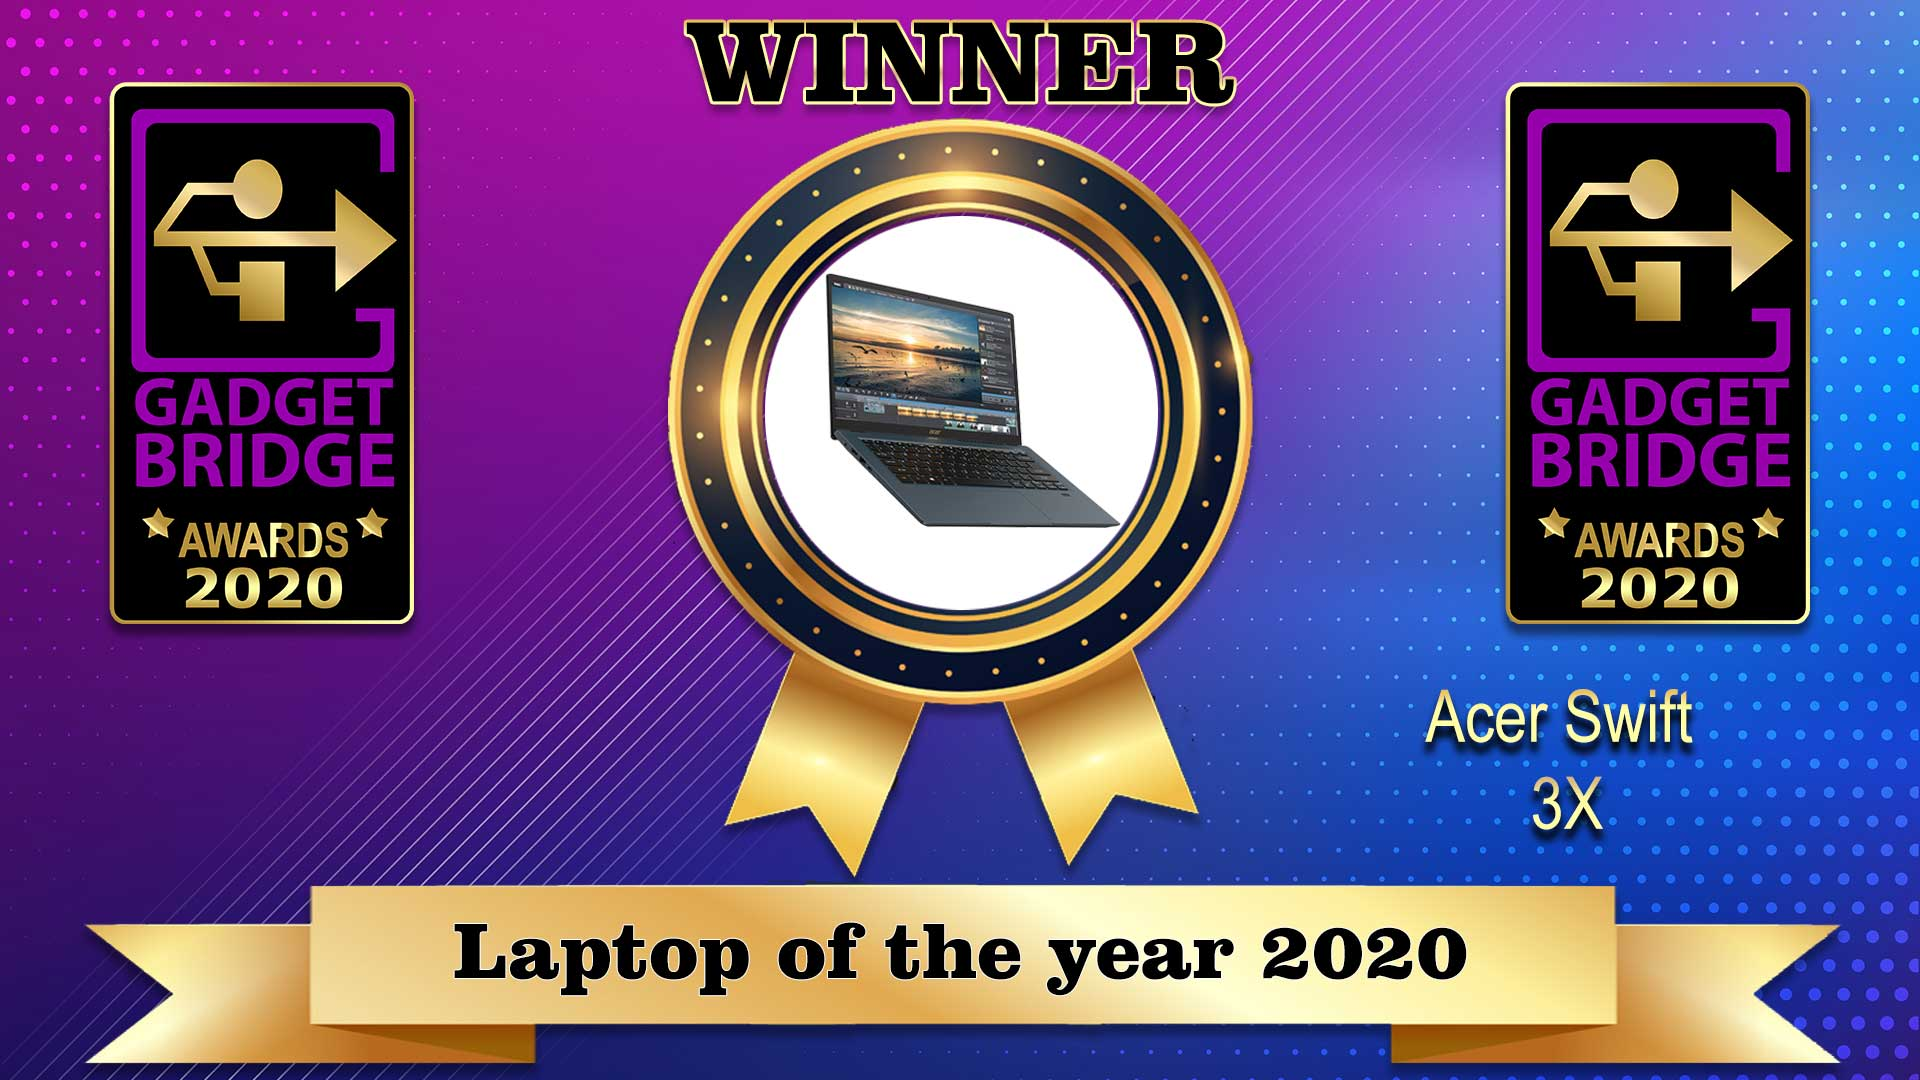 Laptop-of-the-year-2020